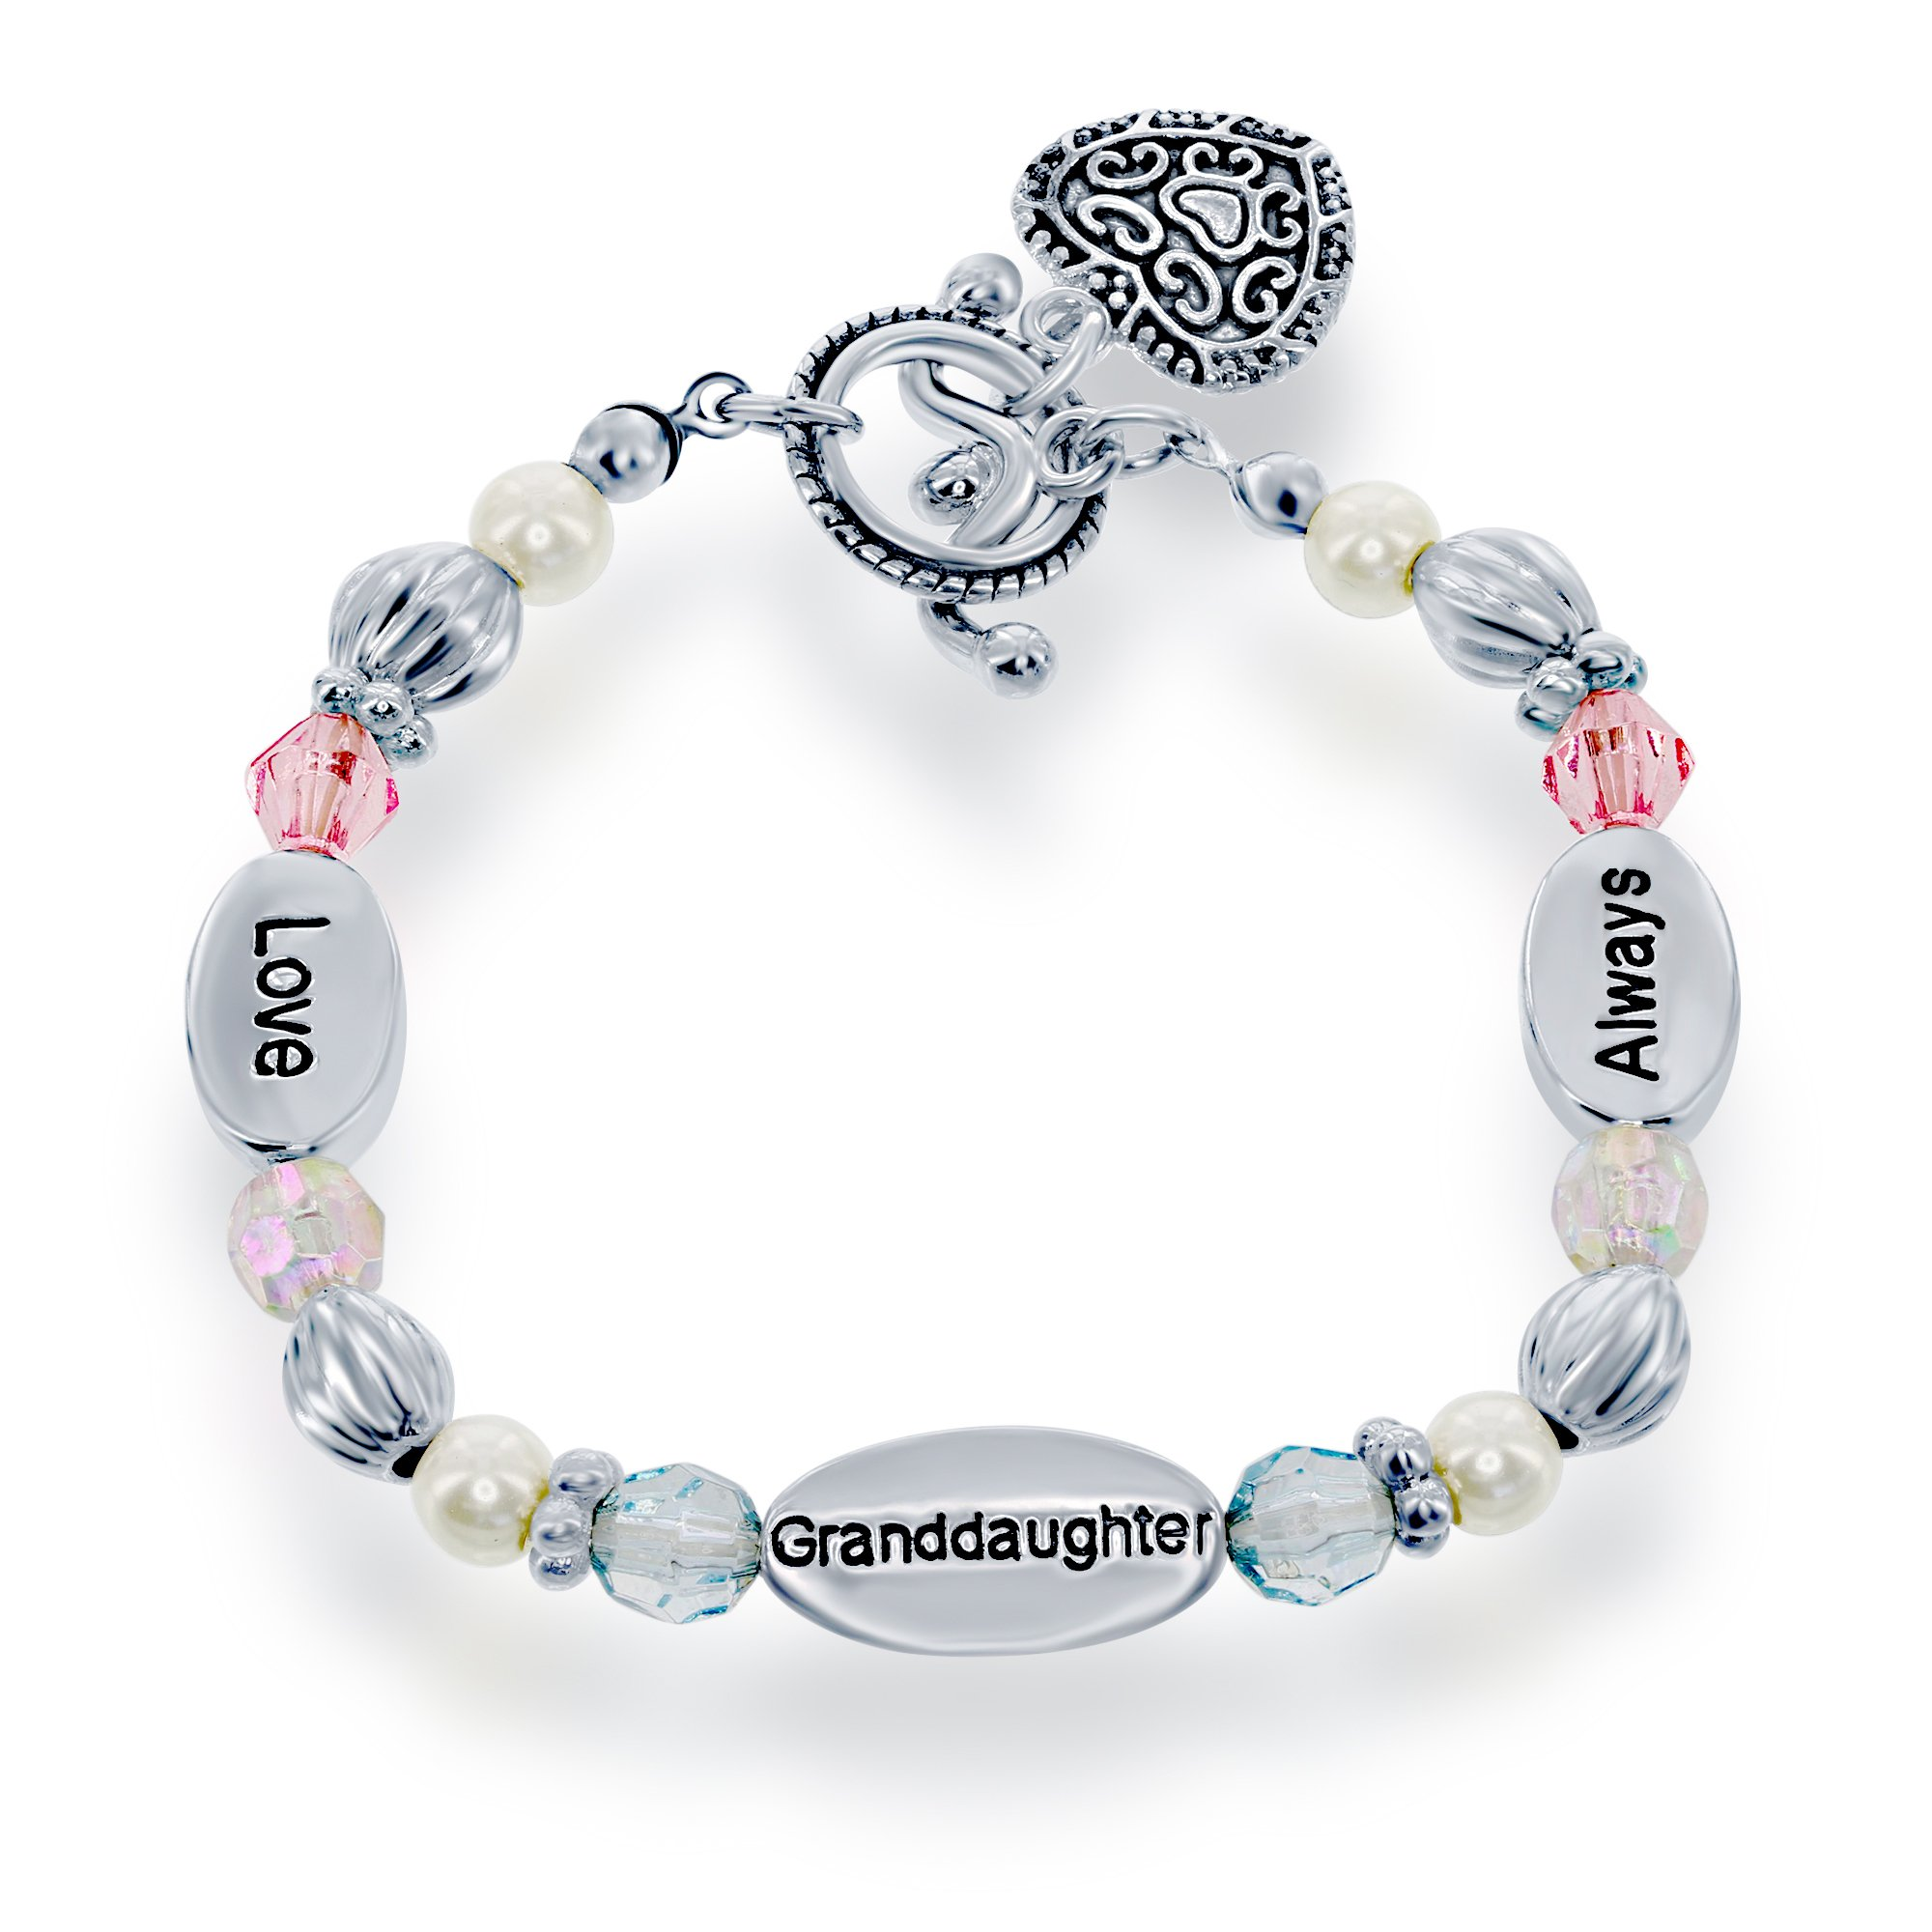 Jewellery & Watches Honesty Green Coloured Beads And Silver Coloured Charms Elasticated Bracelet Fixing Prices According To Quality Of Products